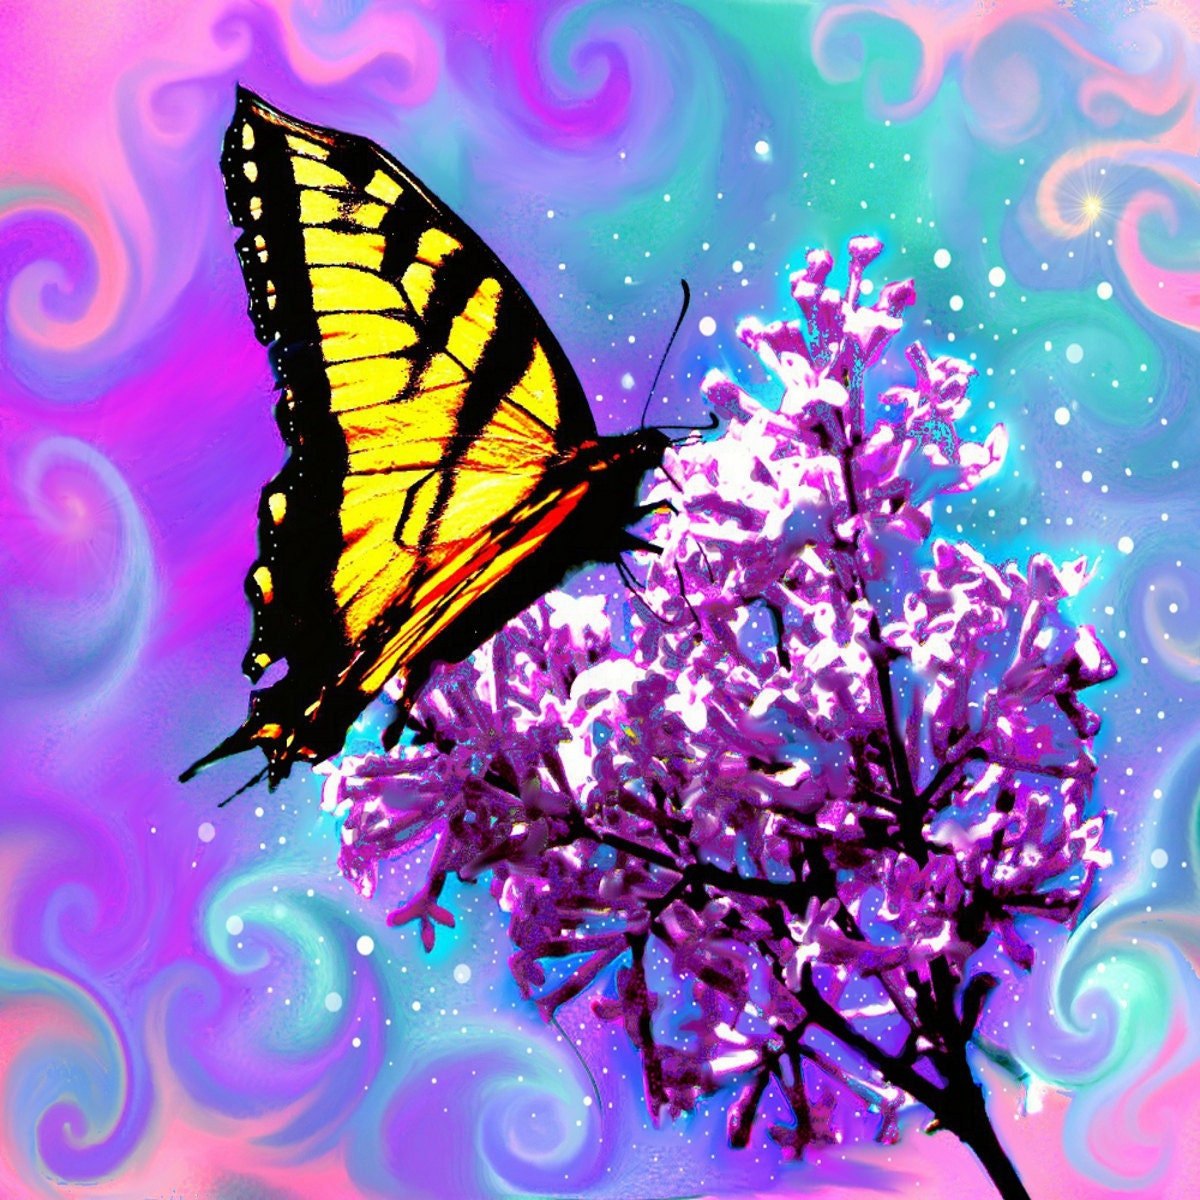 Digital Painting Fantasy Butterfly Abstract Art Print Energy